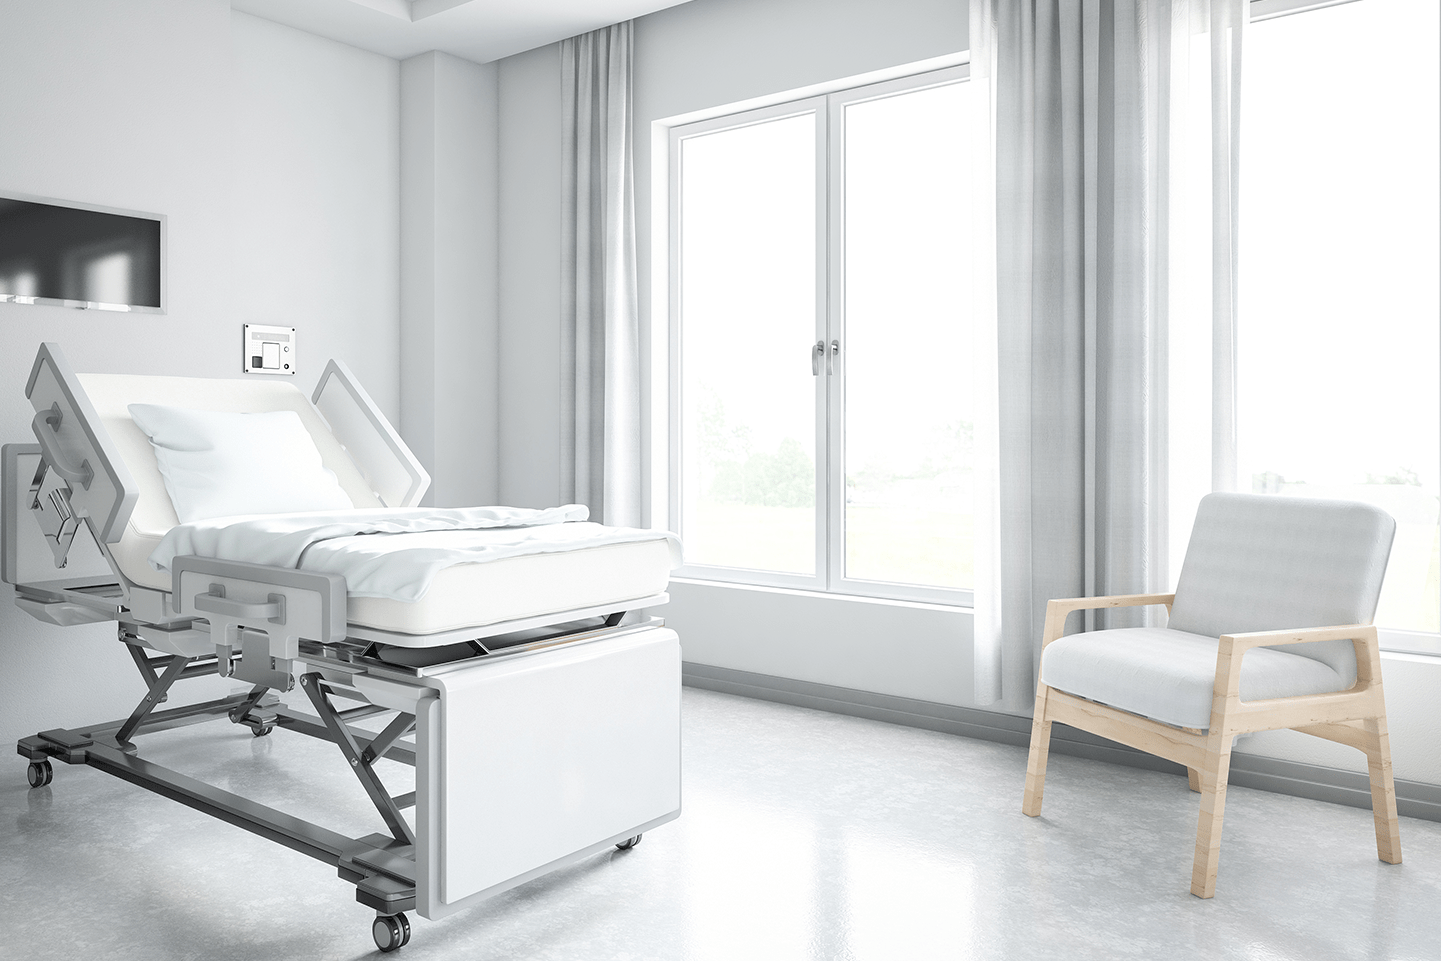 Window treatment considerations for   hospitals and healthcare facilities